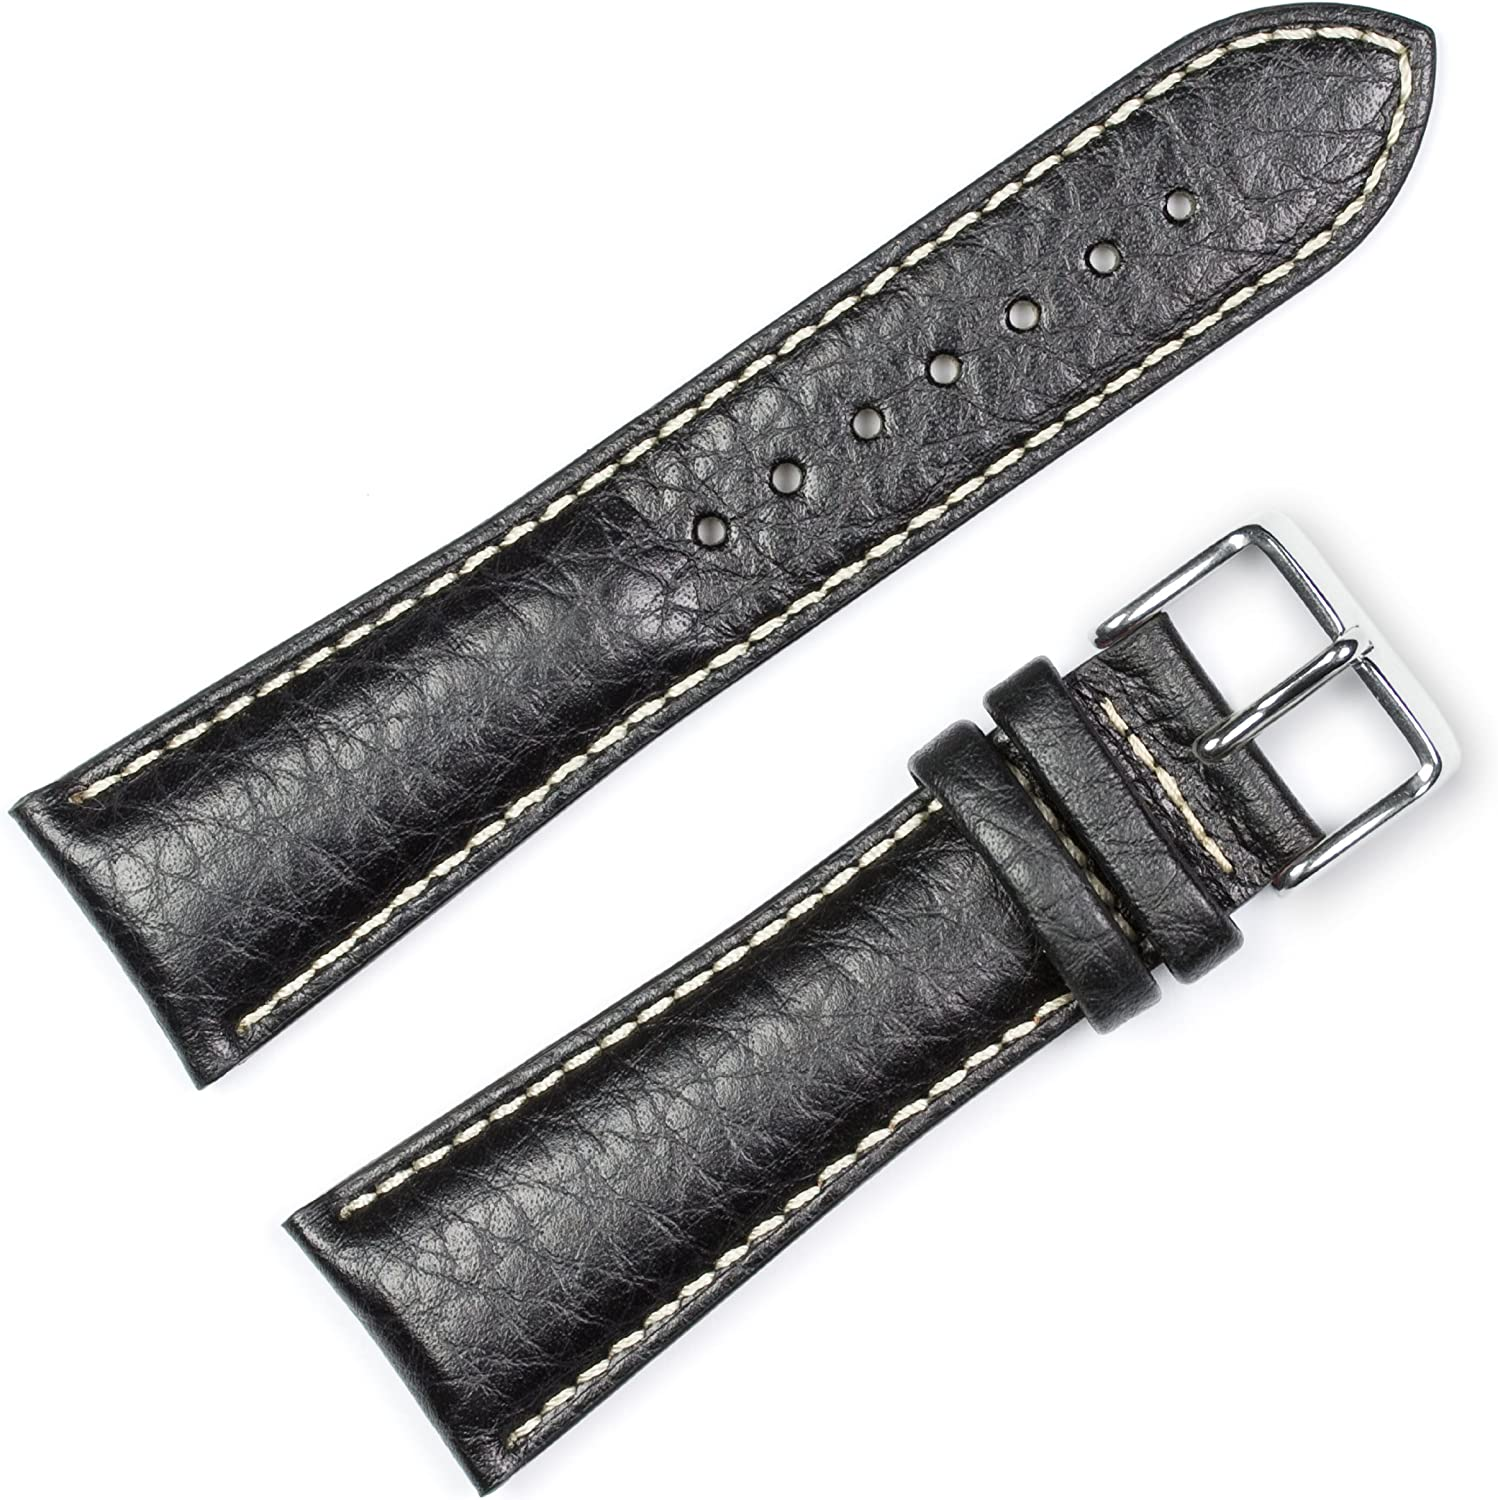 Sport Leather Watch Band - Choice of Color - (Black, Brown, Havana) & Width - (12, 14, 16, 17, 18, 19, 20, 22, 24, 26, 28mm)